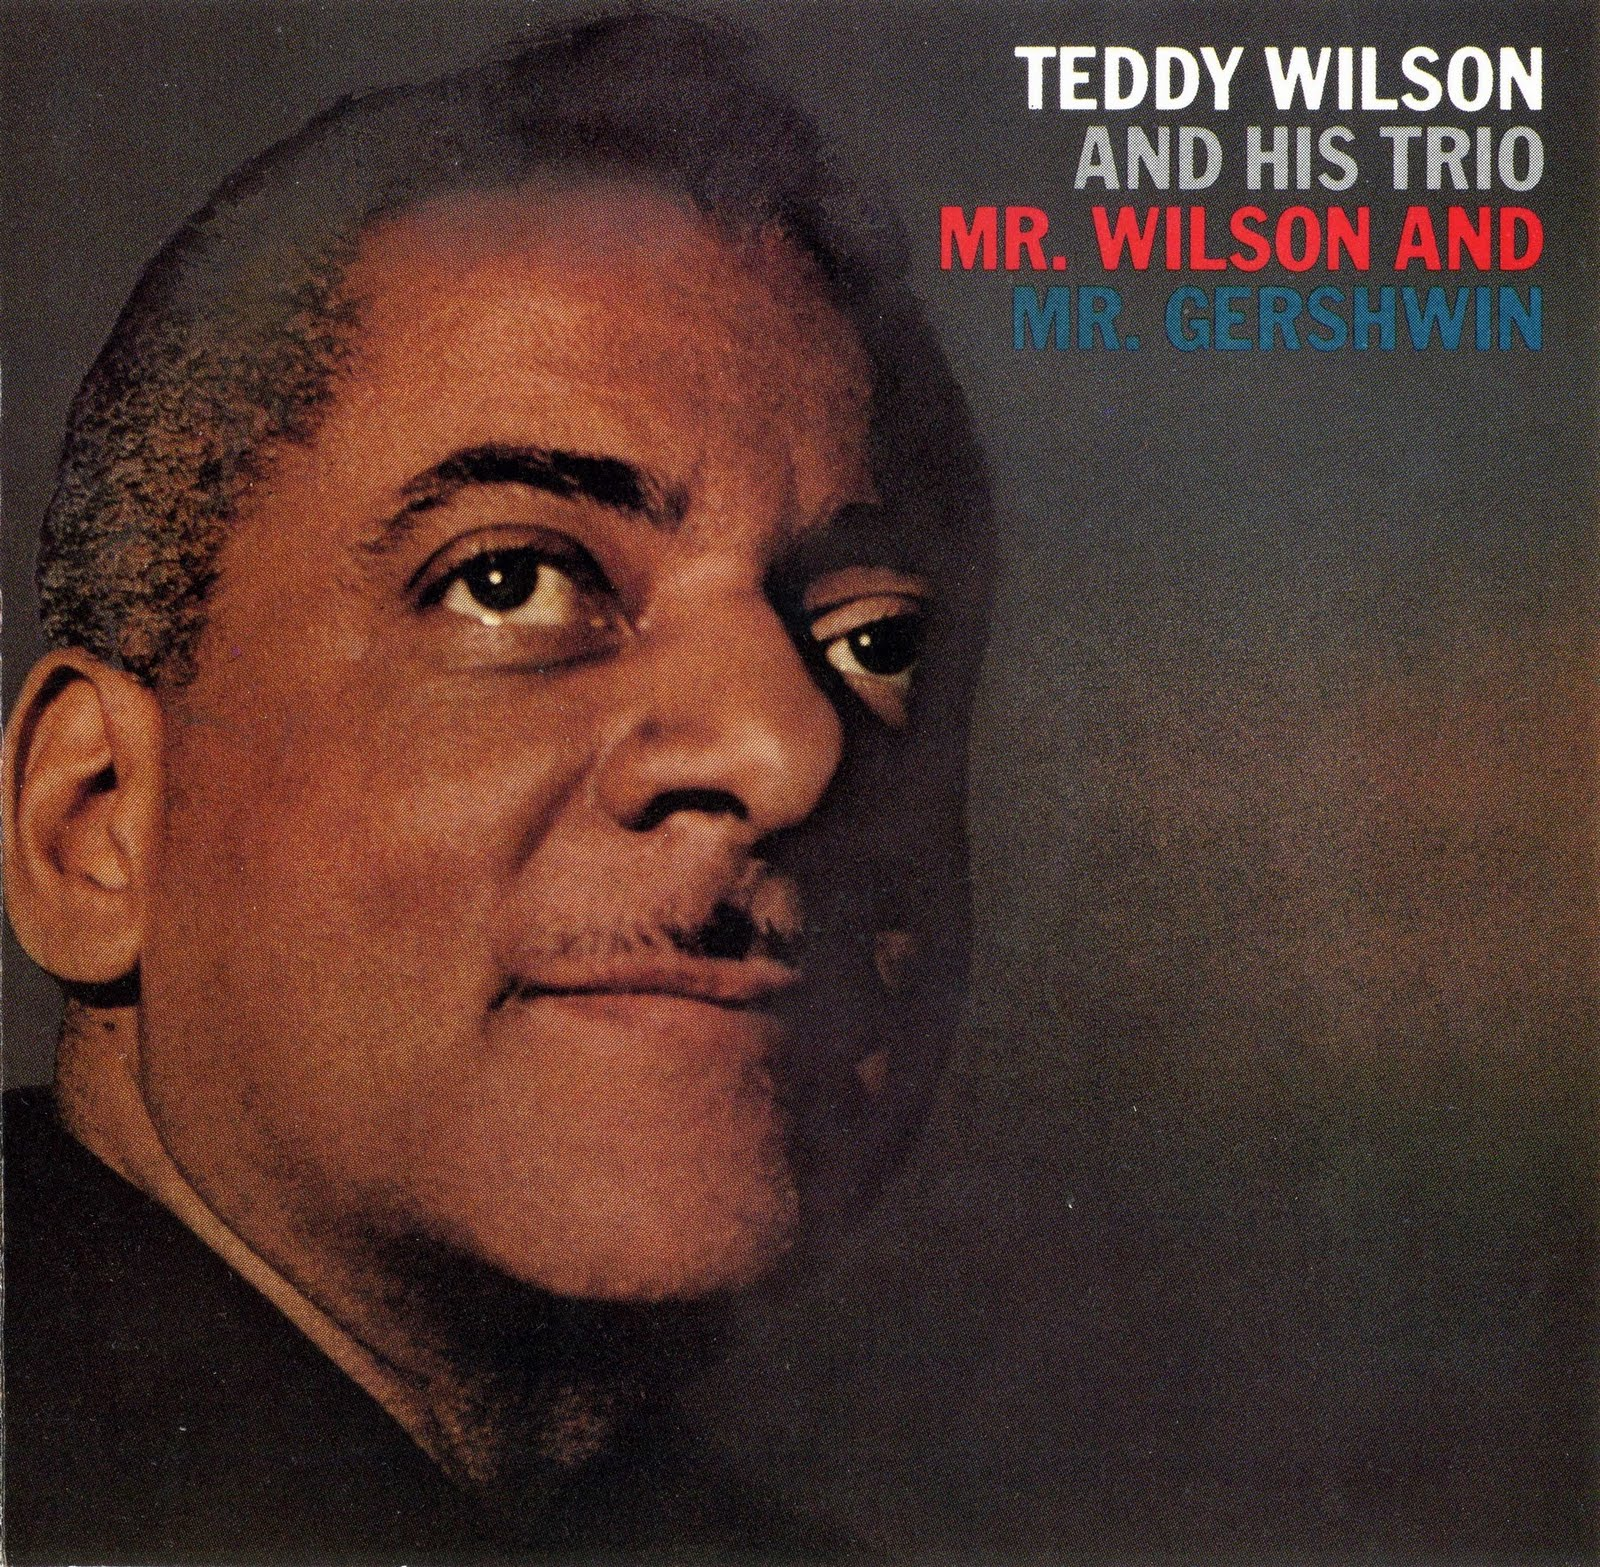 theodore and wilson Teddy wilson was born on december 10, 1943 in new york city, new york, usa as theodore rosevelt wilson he was an actor and writer, known for good.